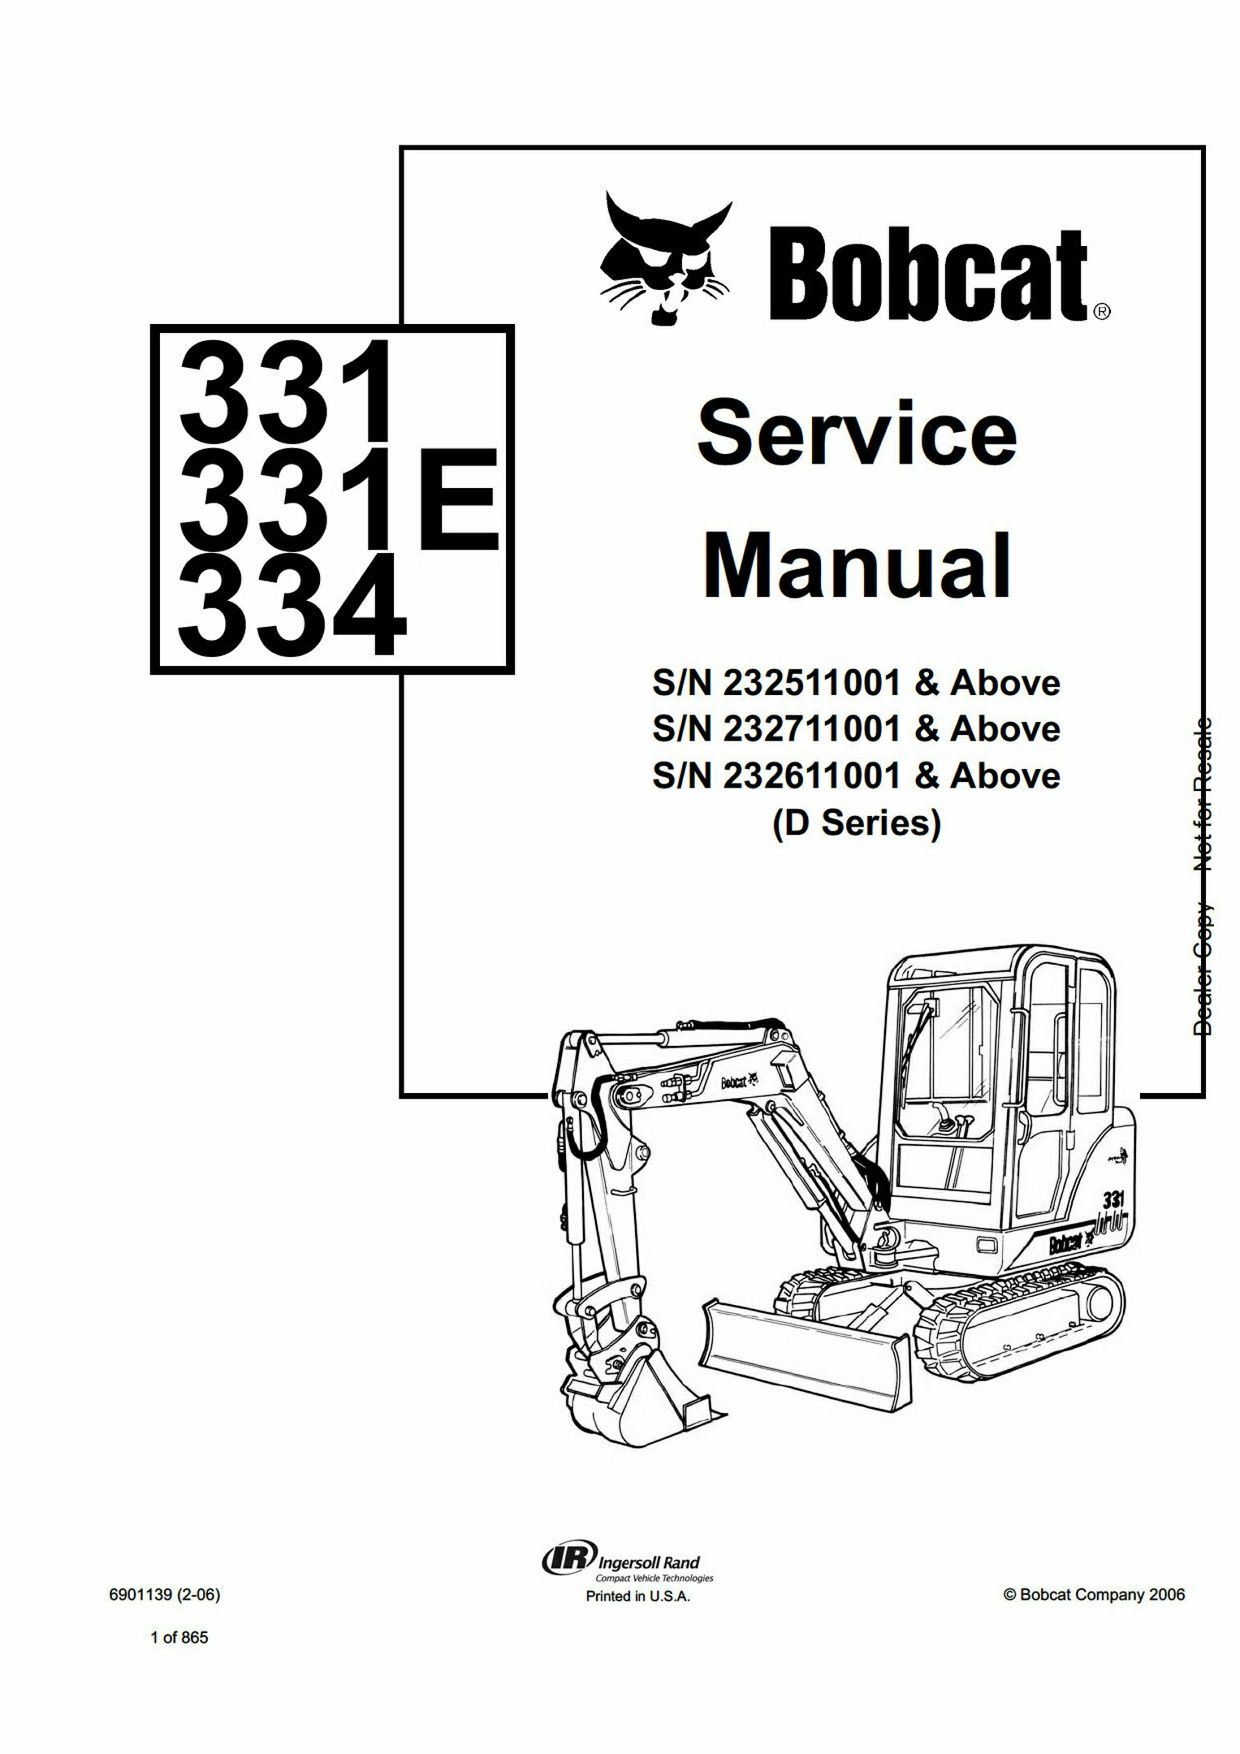 small resolution of pdf bobcat 331 331e 334 compact excavator service manual sn 232611001 and above